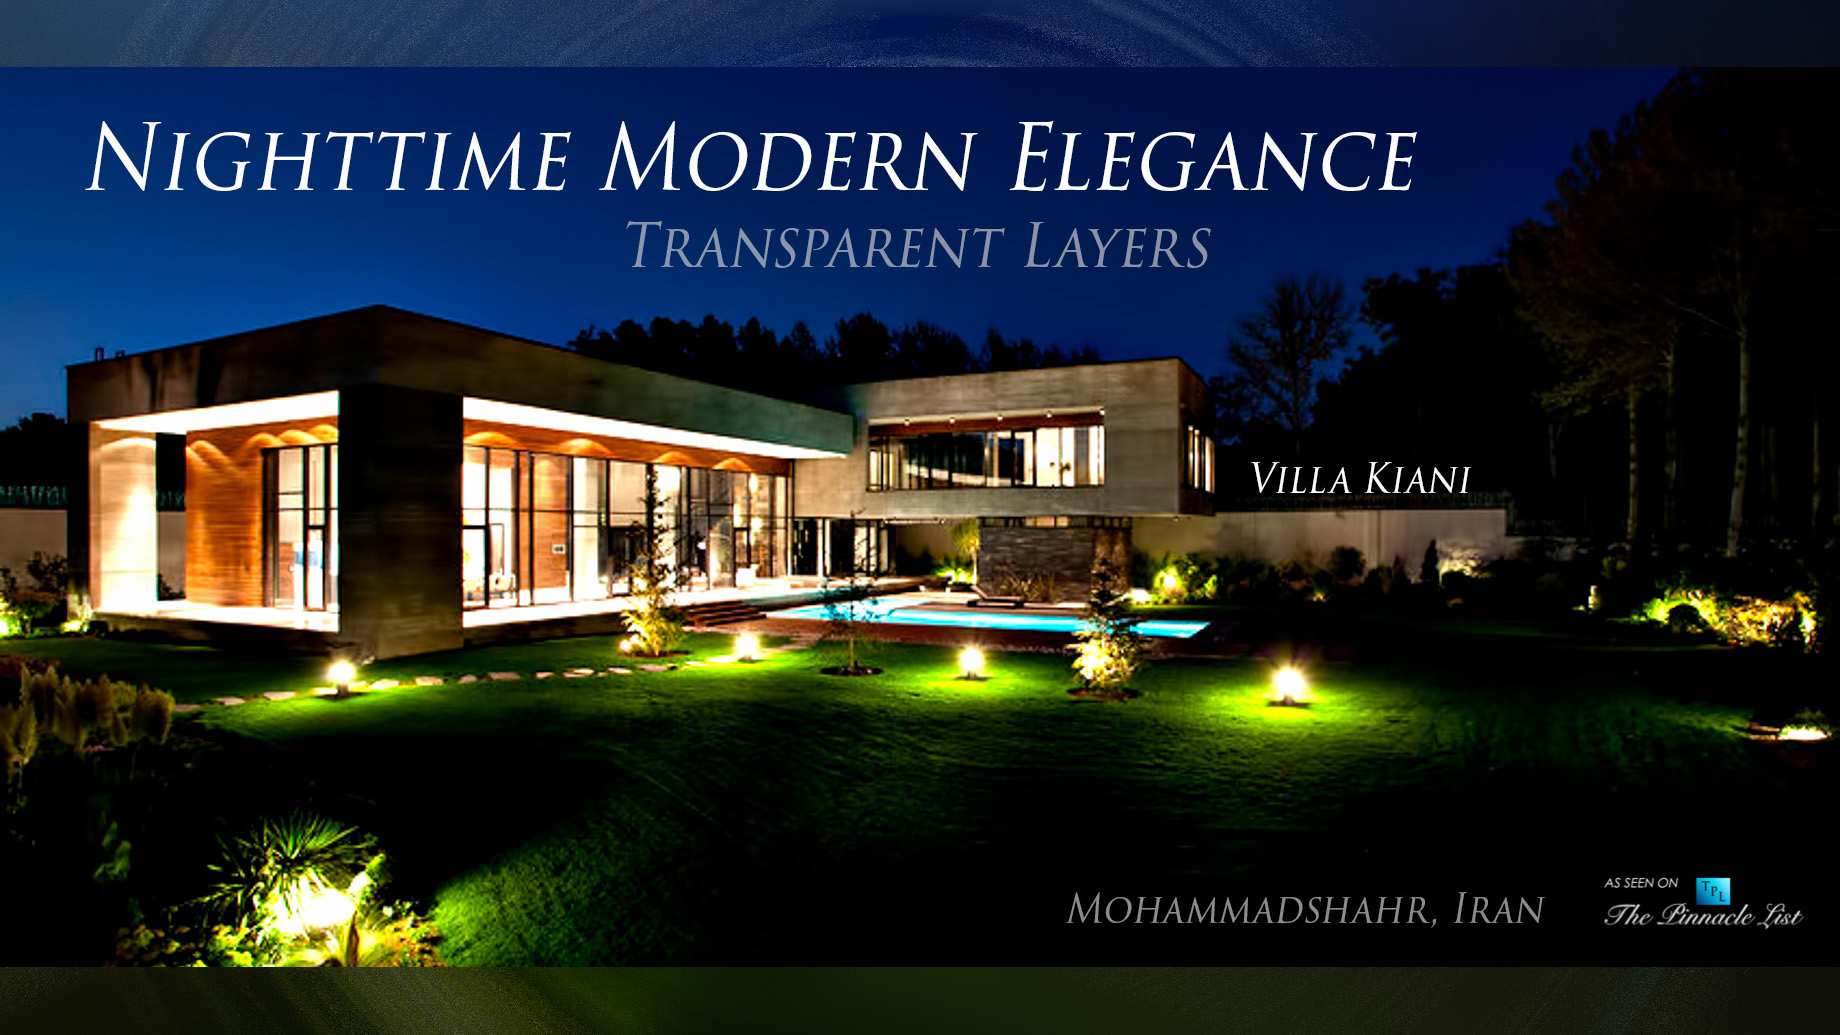 Nighttime Modern Elegance with Transparent Layers at Villa Kiani in Iran